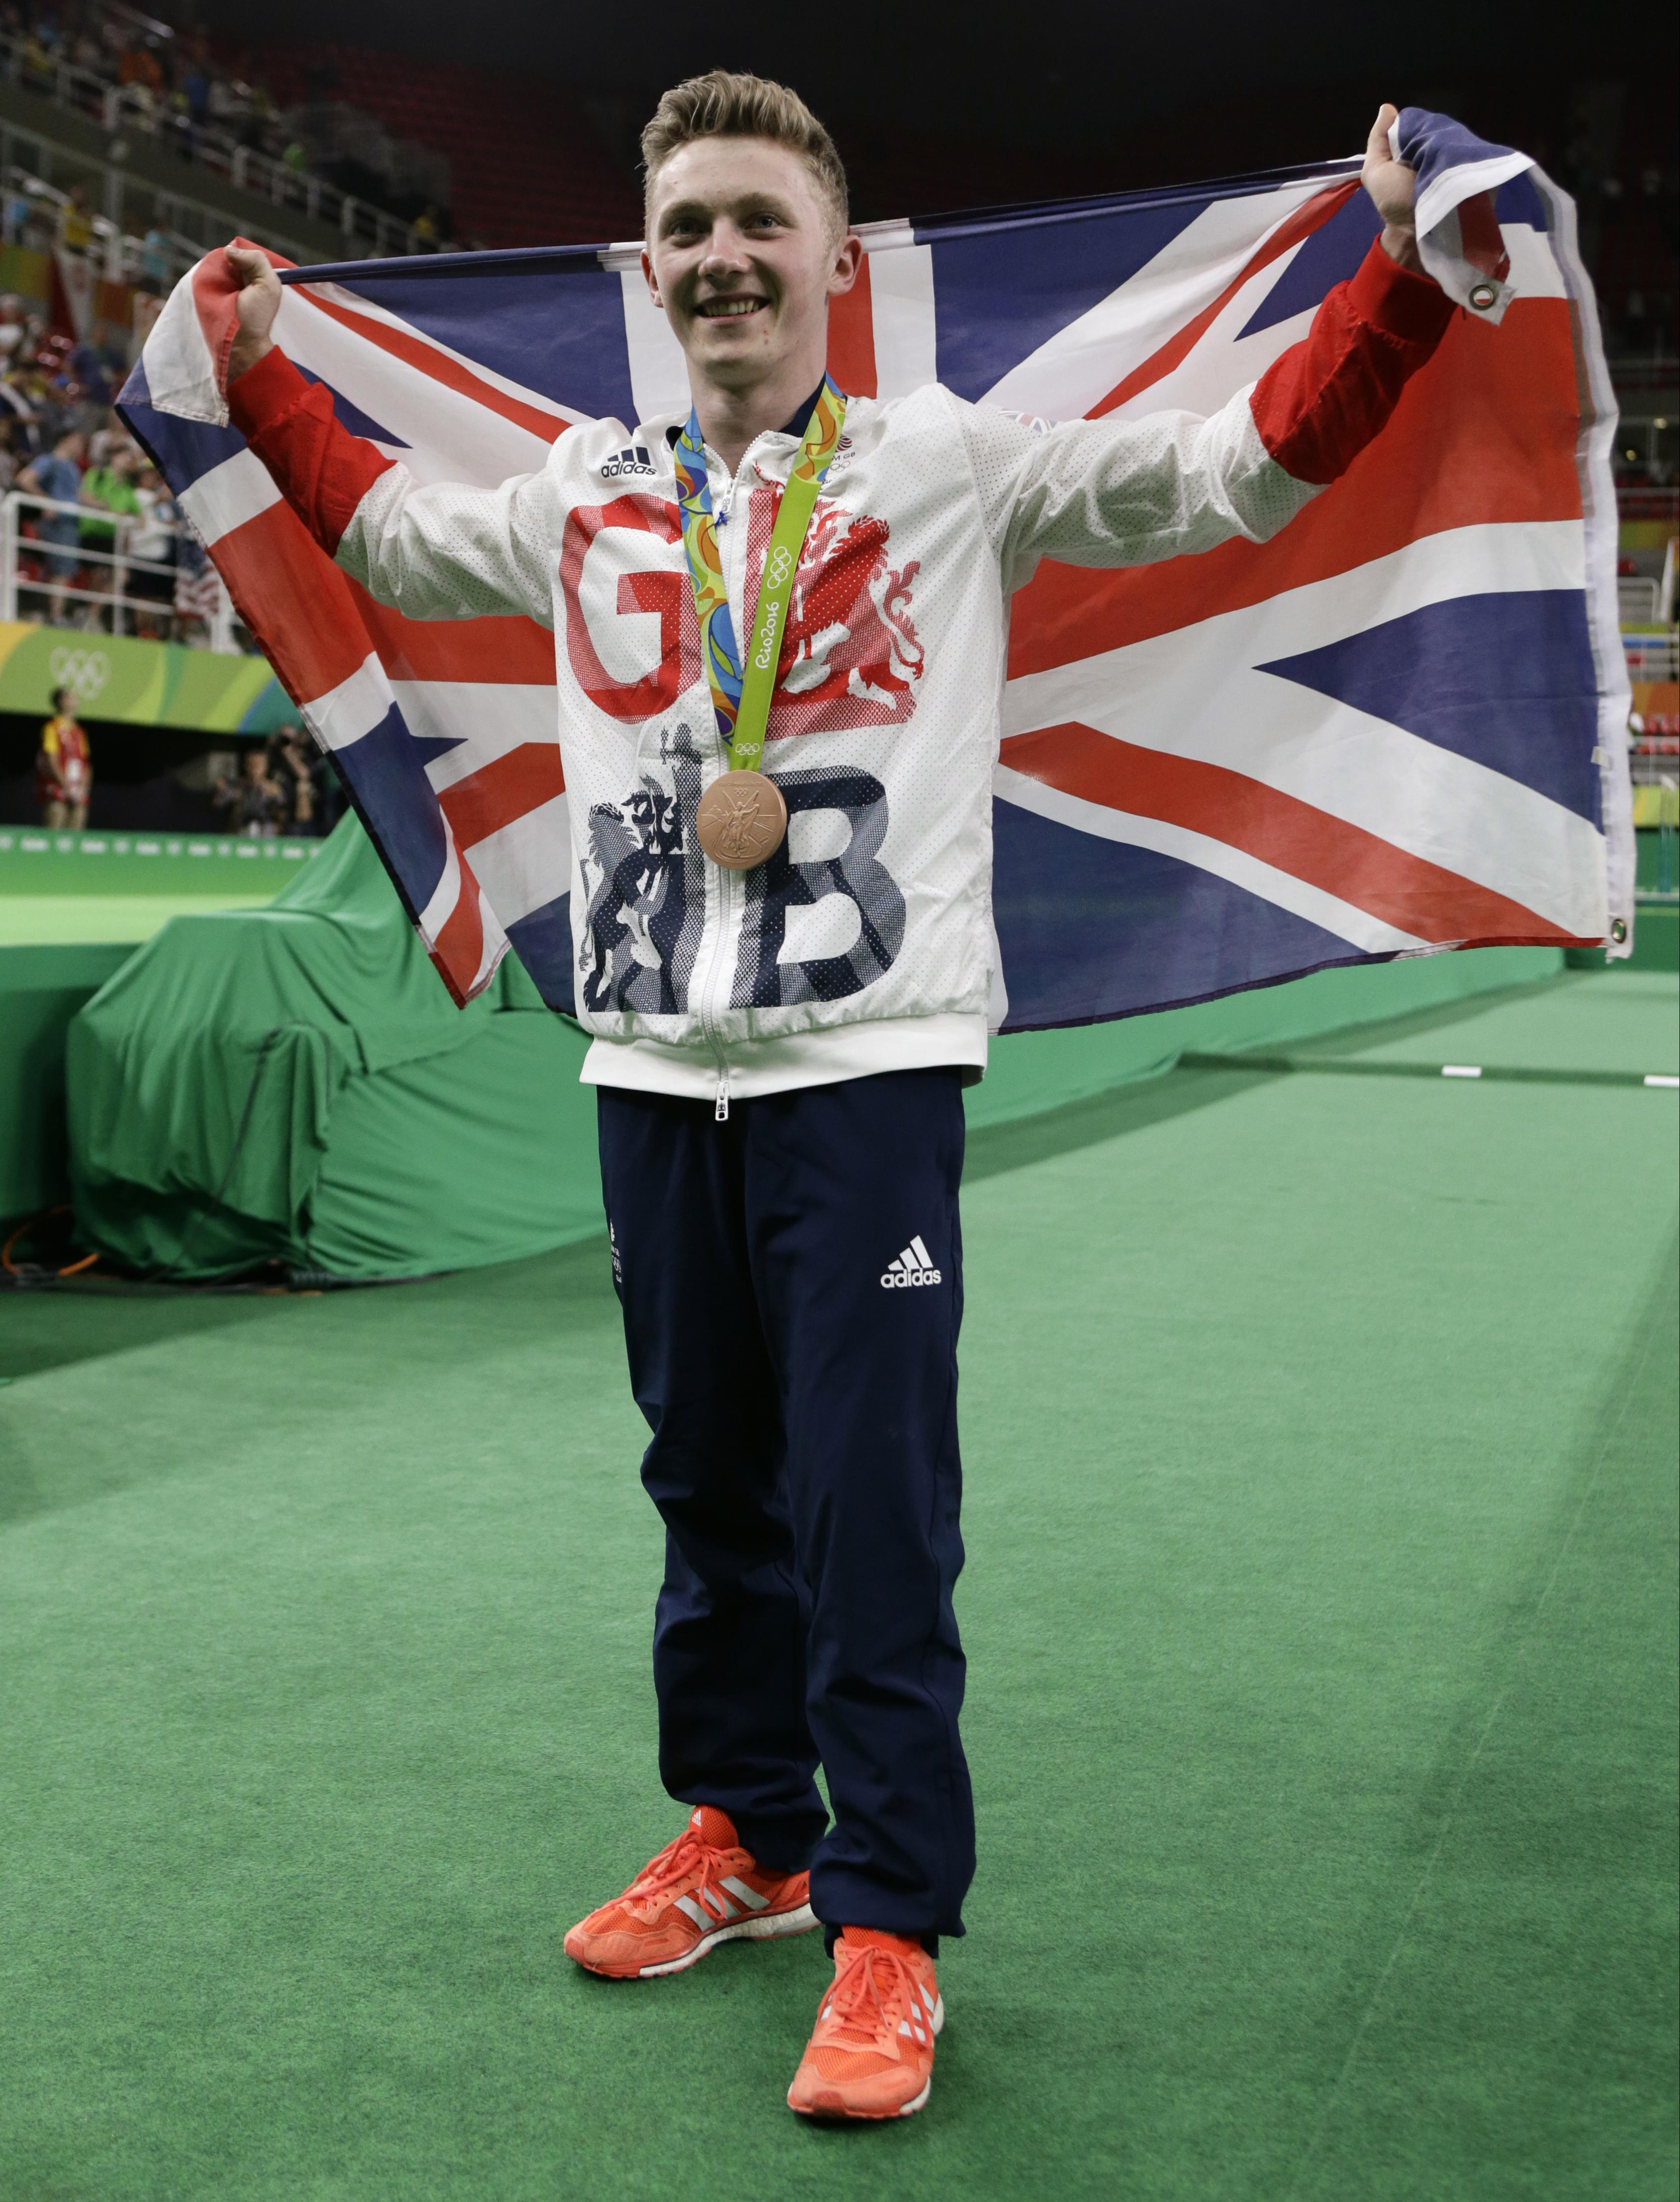 Wilson has won five golds medals at the Commonwealth Games